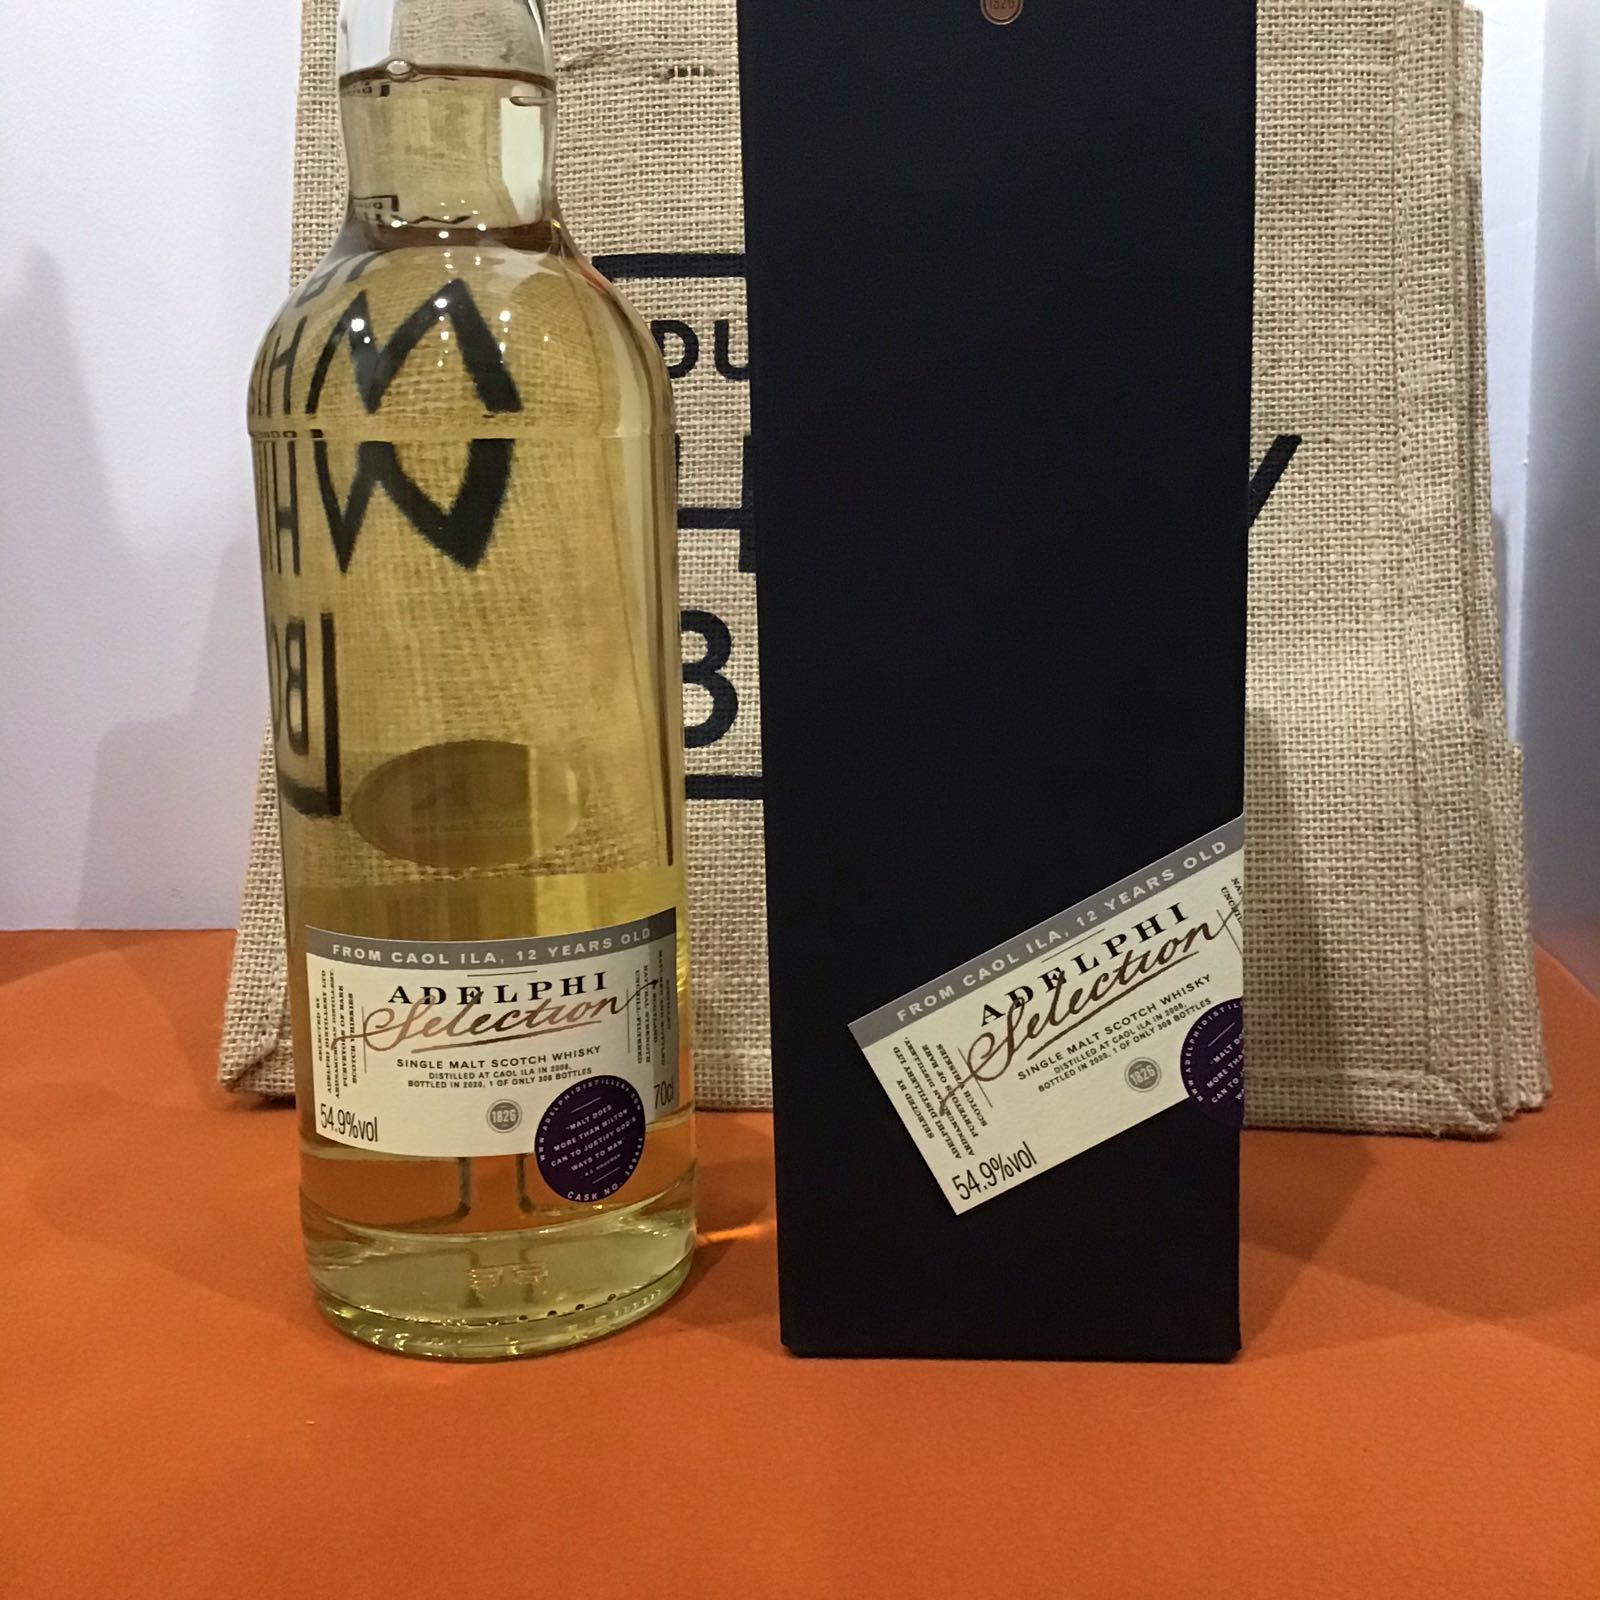 Adelphi Caol Ila 2008 / 12 Year Old